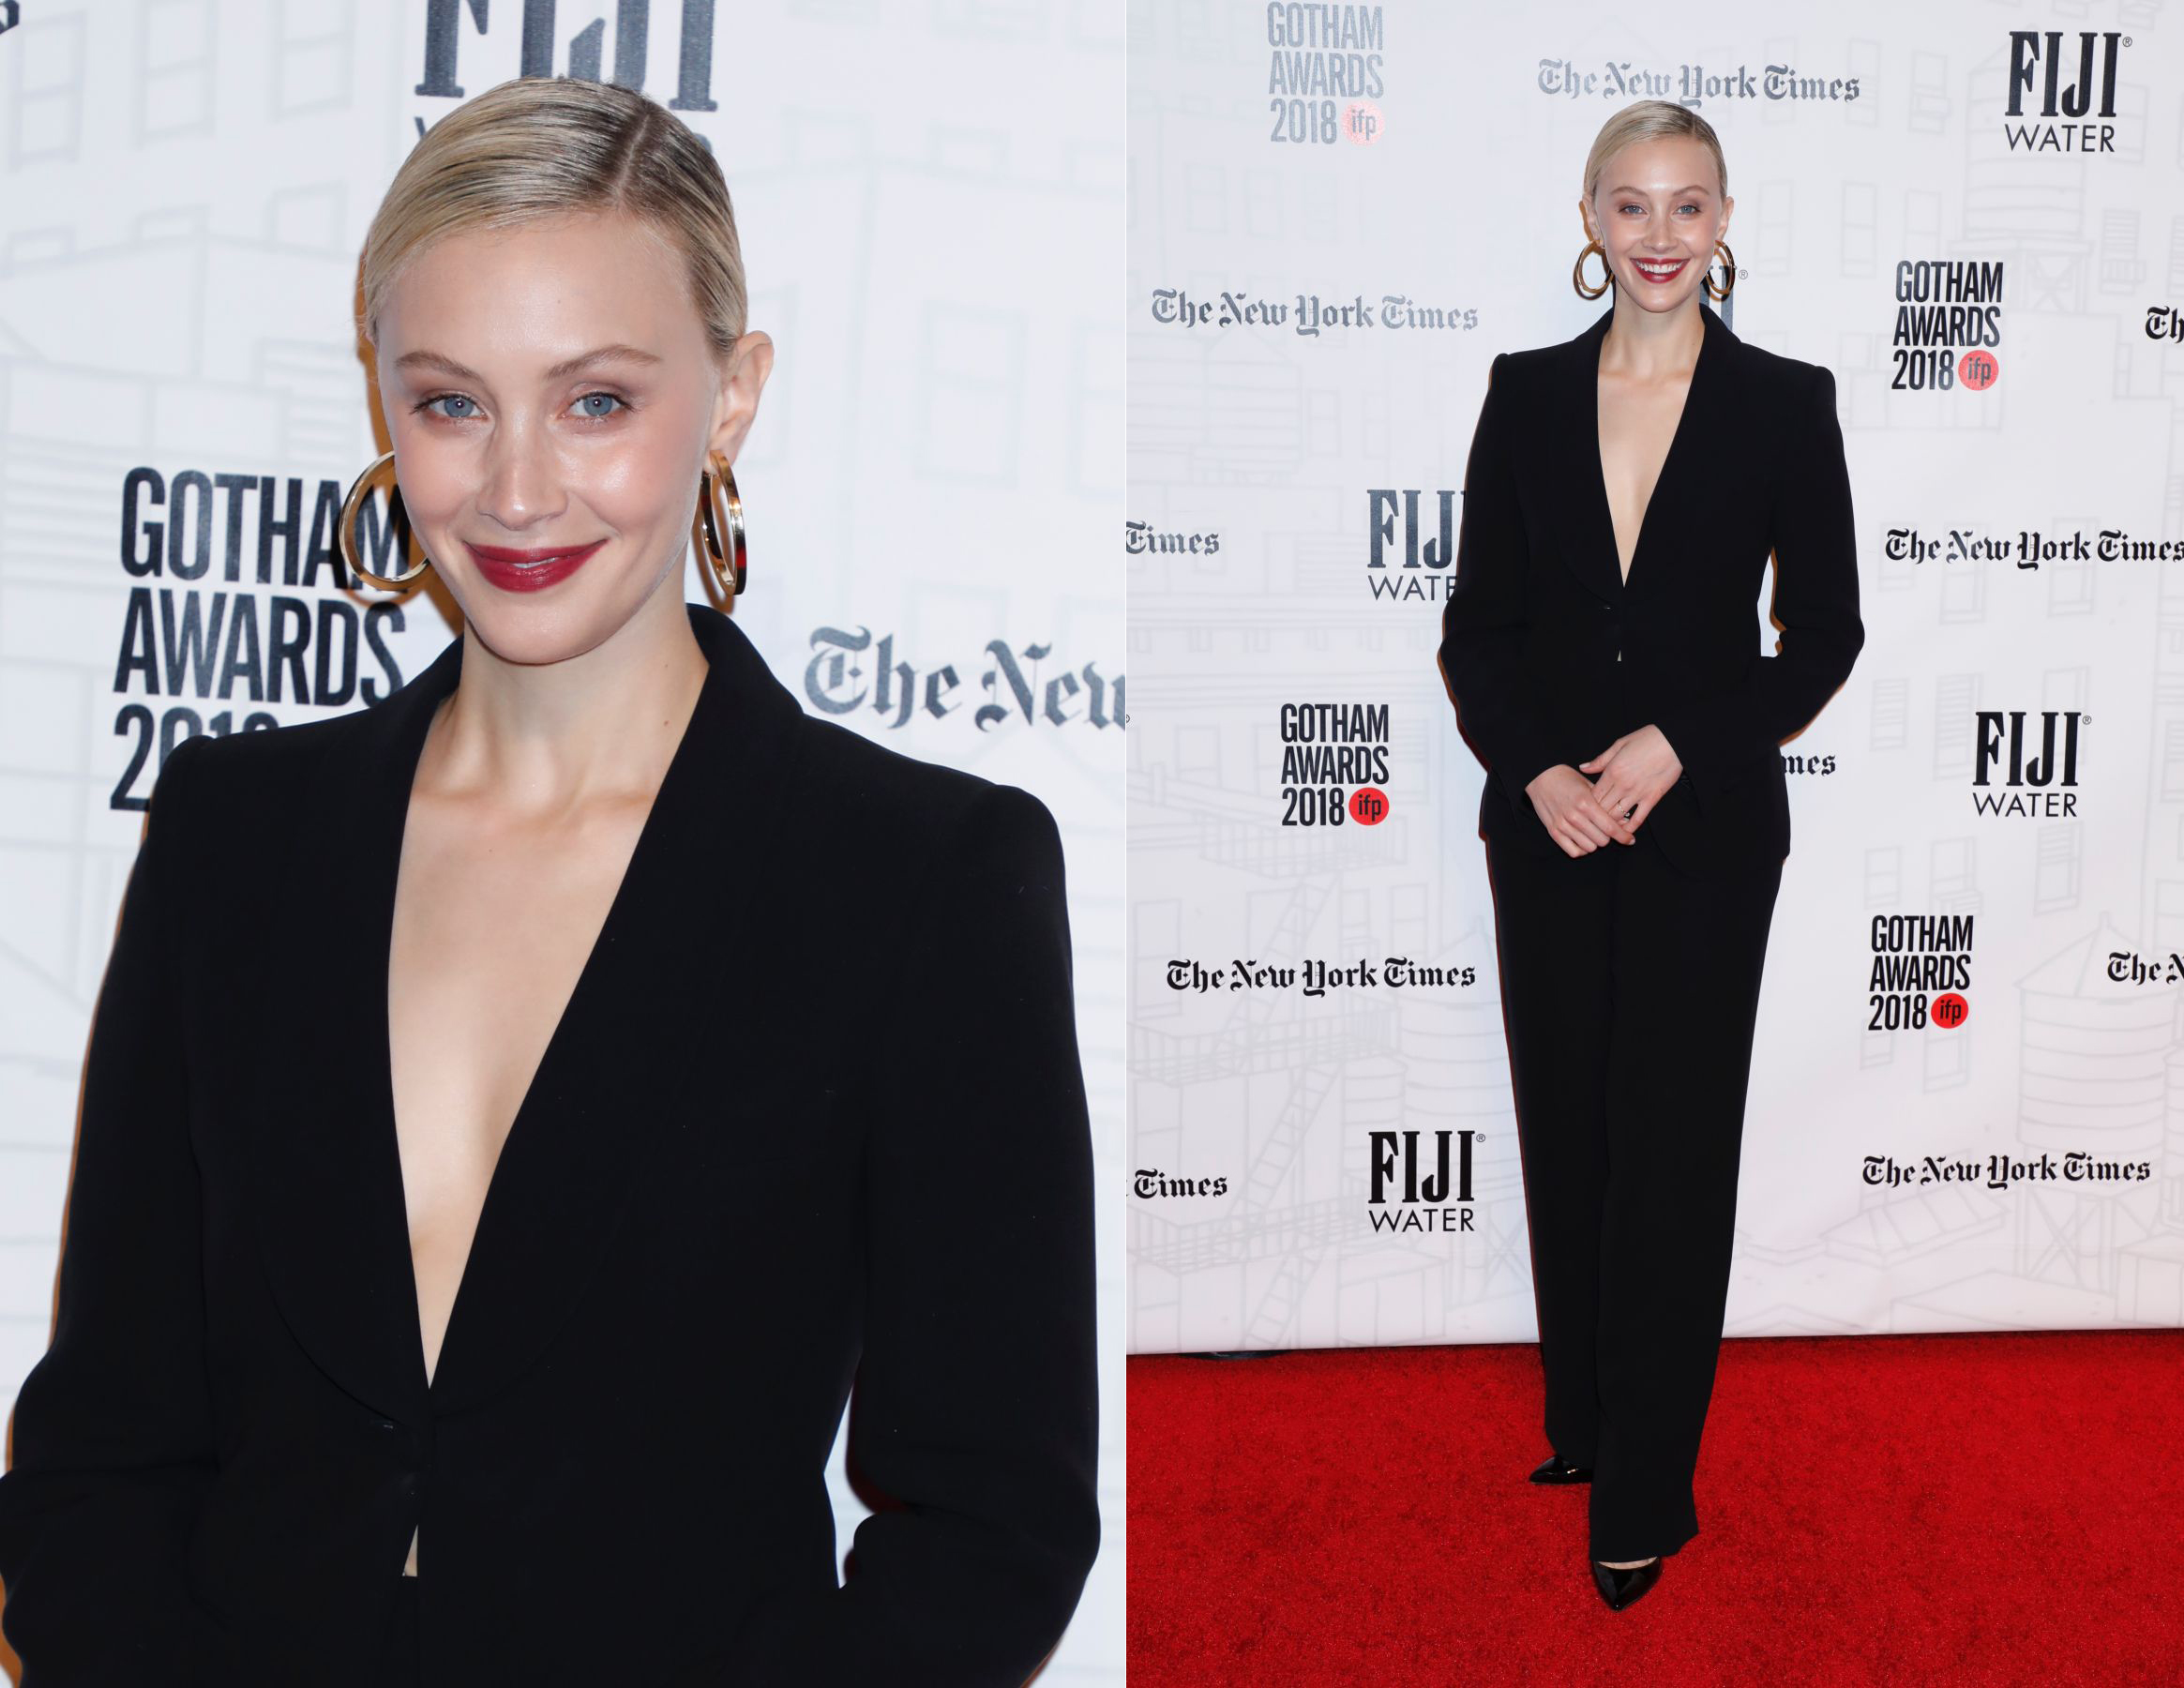 sarah-gadon-at-28th-annual-gotham-awards-new-york-0 copy.jpg